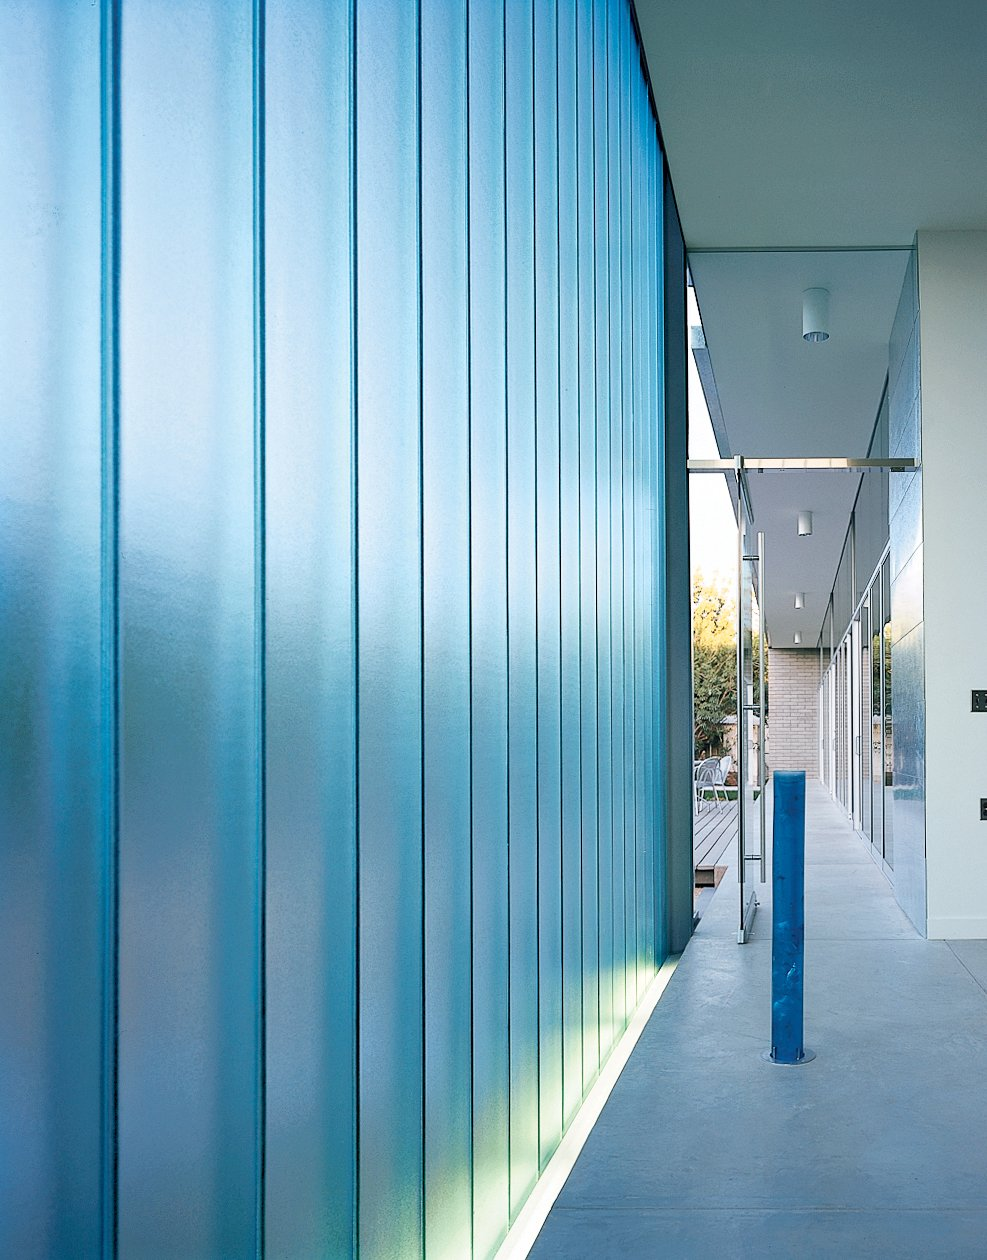 Walls of channel glass, an industrial material that comes in long strips shaped in a shallow U, help preserve the residents' privacy, while allowing only soft, filtered light inside. In the chapel, the DeBartolos paired and staggered the narrow panels so that only the most opaque light comes through. Obscure views and the most basic shapes and colors from outside create a glowing, ethereal quality indoors. Holy water is held in an elegant blue glass cylinder.  Photo 4 of 6 in Houses of the Holy